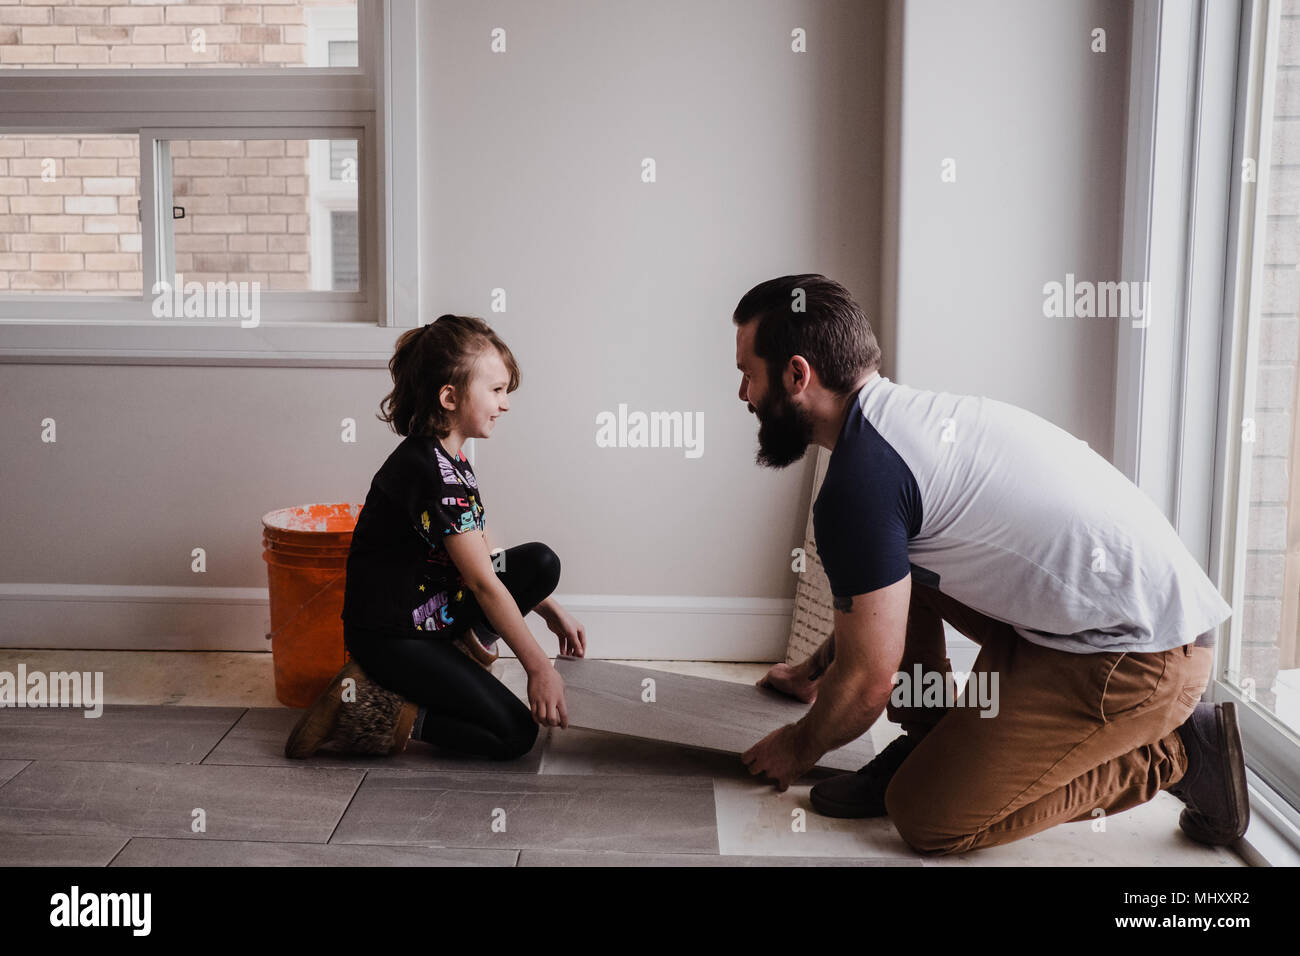 Girl Helping Father Install Floor Tiles Stock Photo 183144614 Alamy